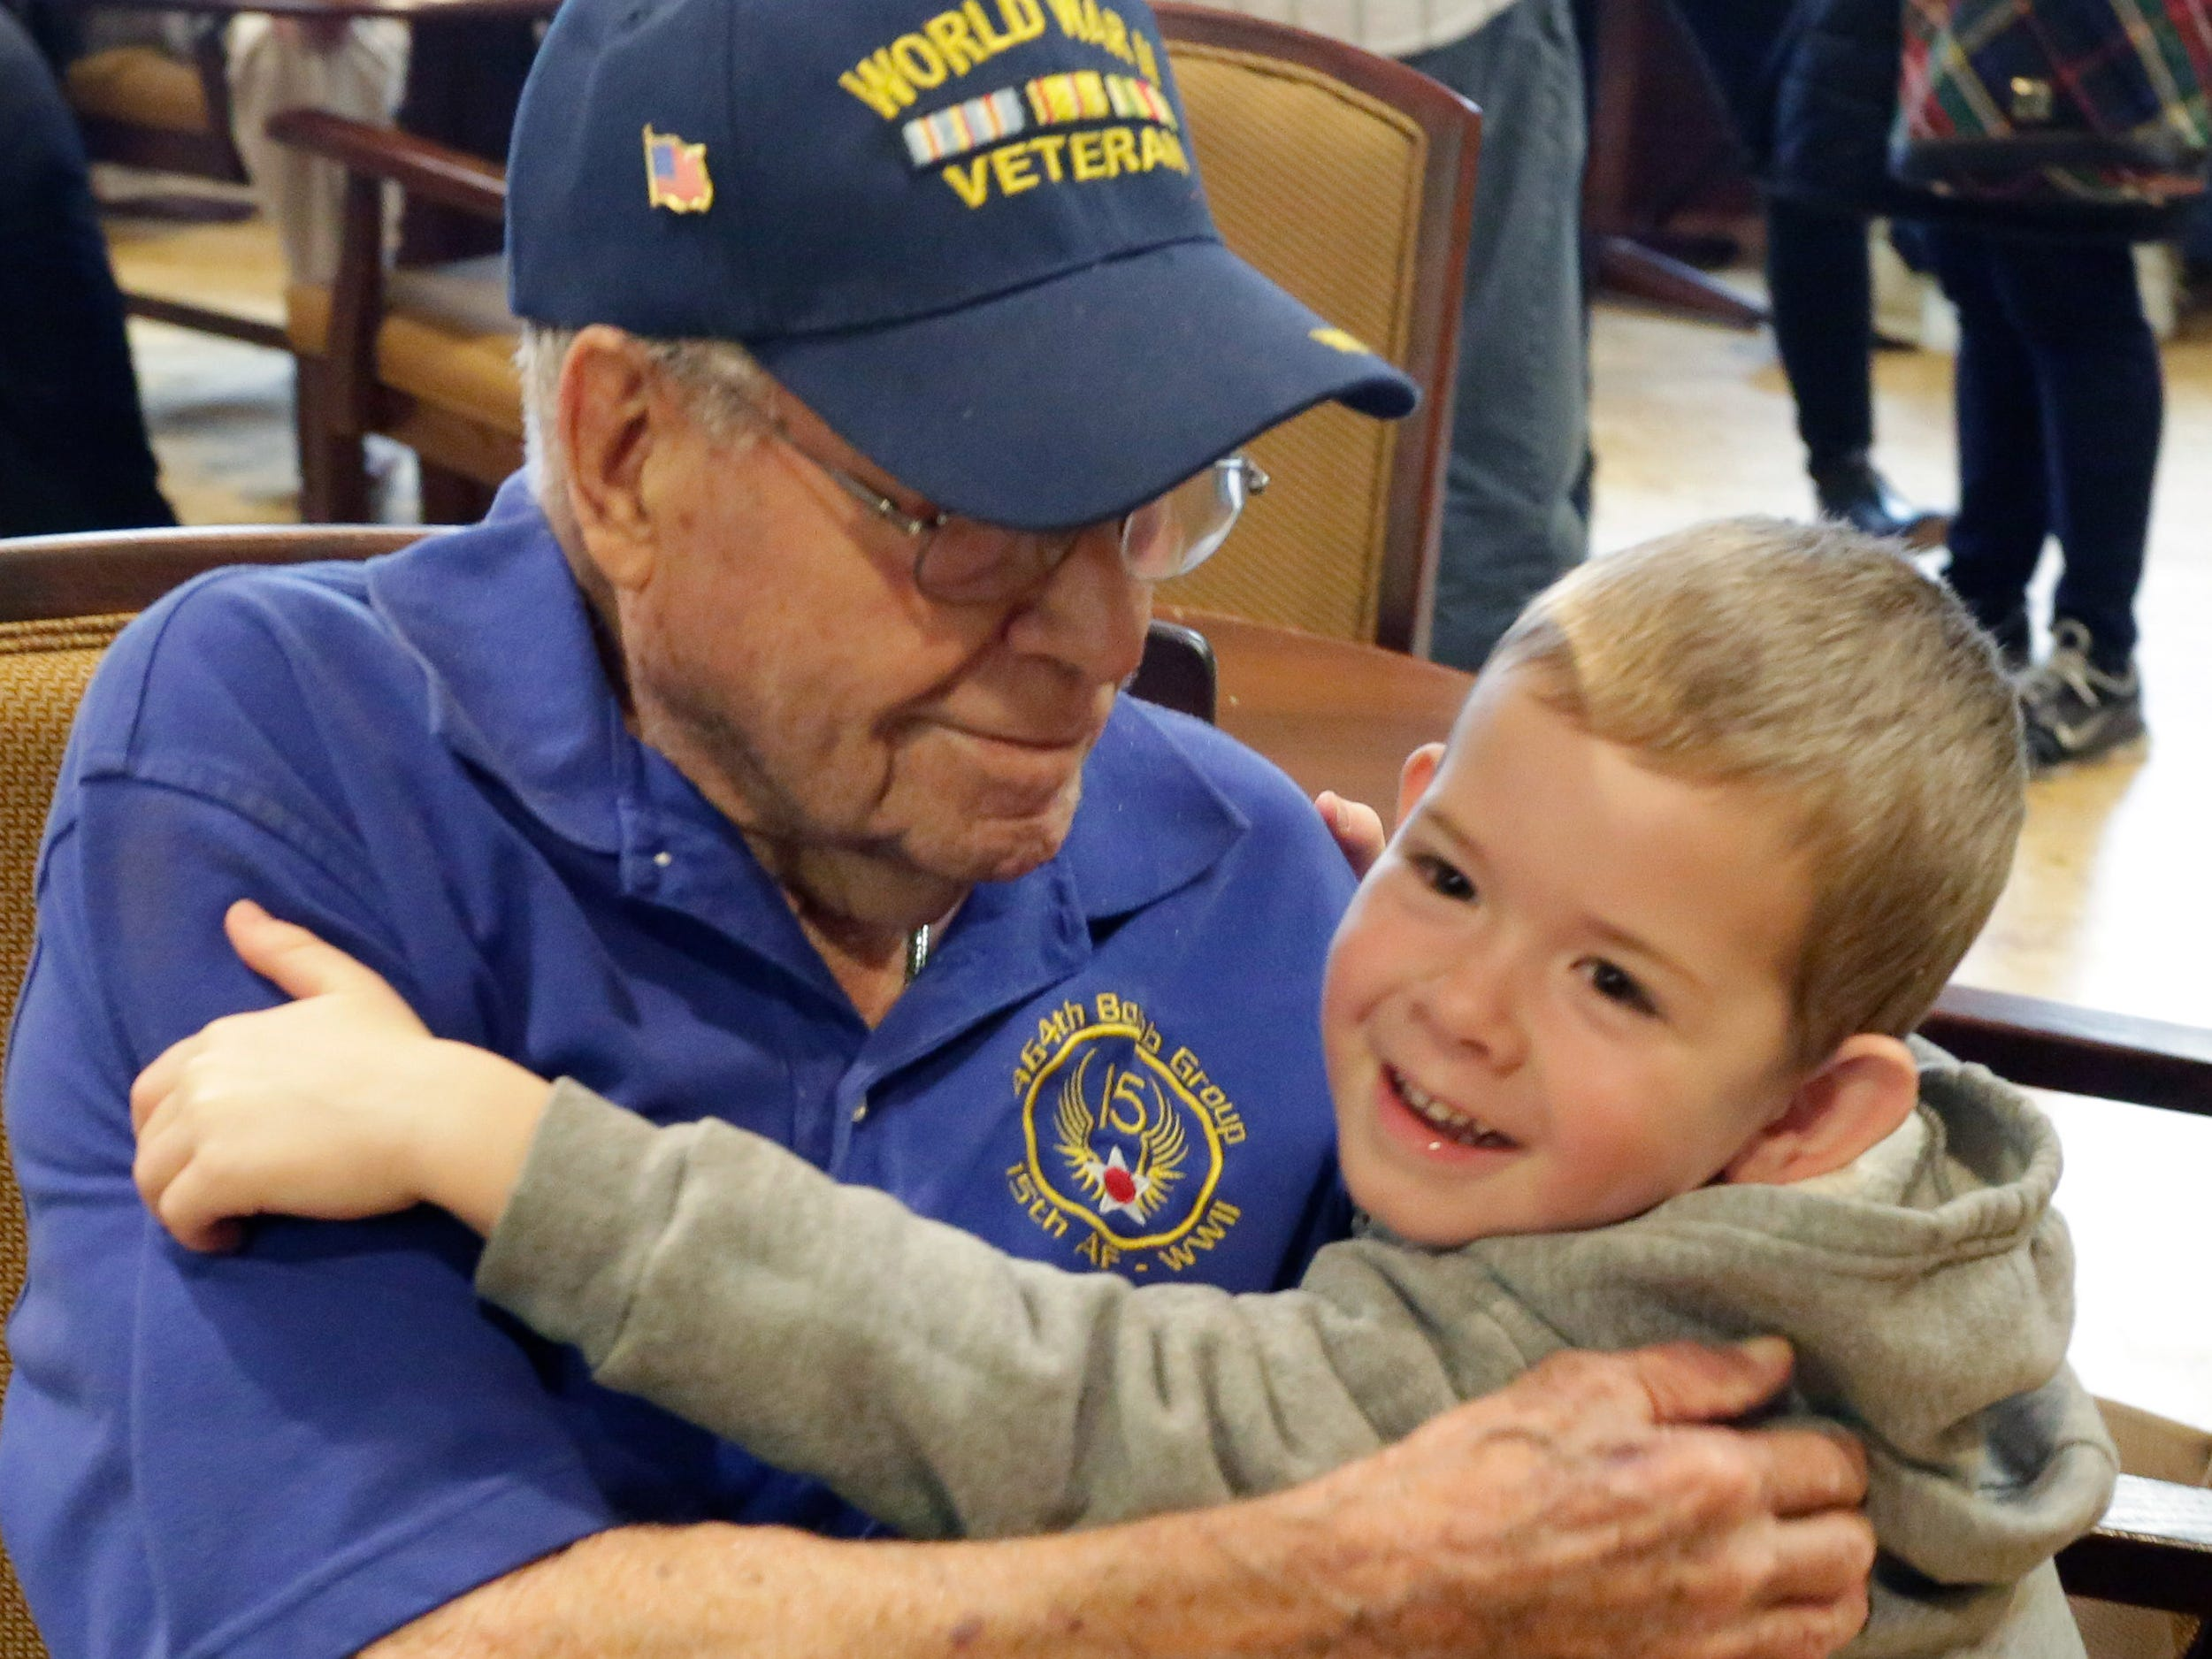 100-year-old World War II veteran Don Harder of Oostburg, left, hugs Malachi Rauwerdink, 4, of Oostburg, Friday January 18, 2019, 2019, at Pine Haven Christian Communities in Oostburg, Wis. Harder's birthday was celebrated at Pine Haven.